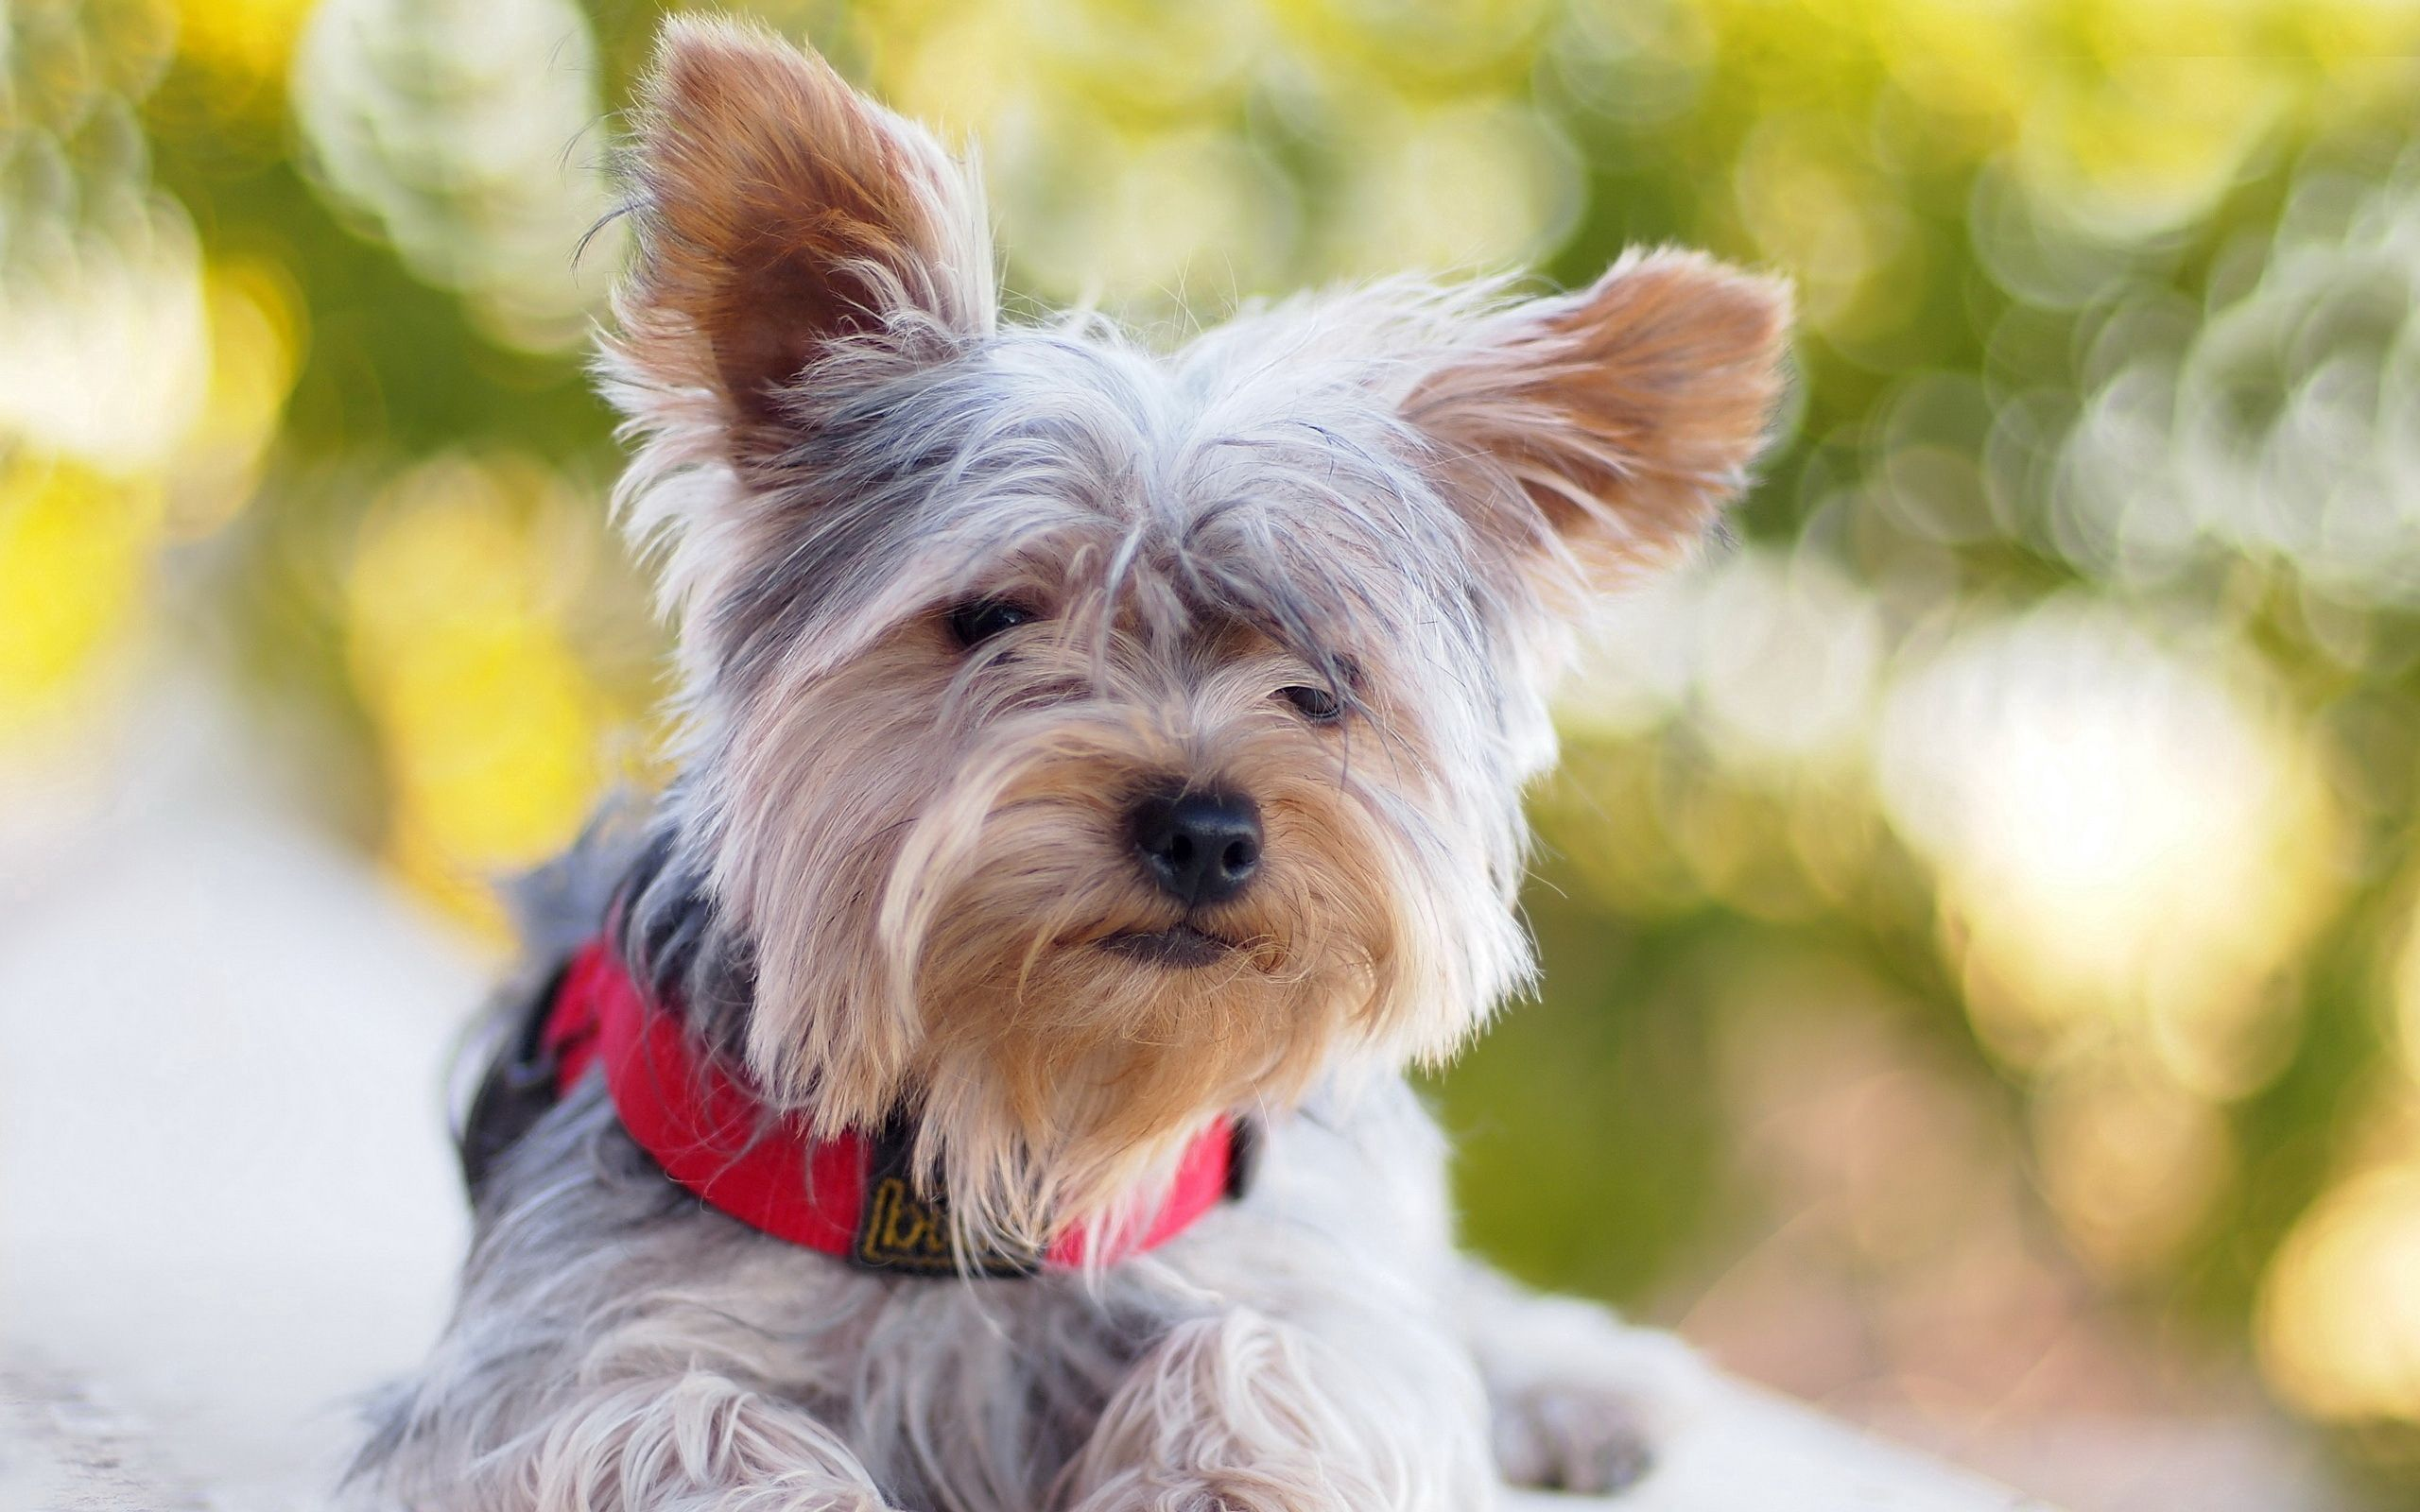 78707 Screensavers and Wallpapers Collar for phone. Download Animals, To Lie Down, Lie, Dog, Yorkshire Terrier, Collar pictures for free